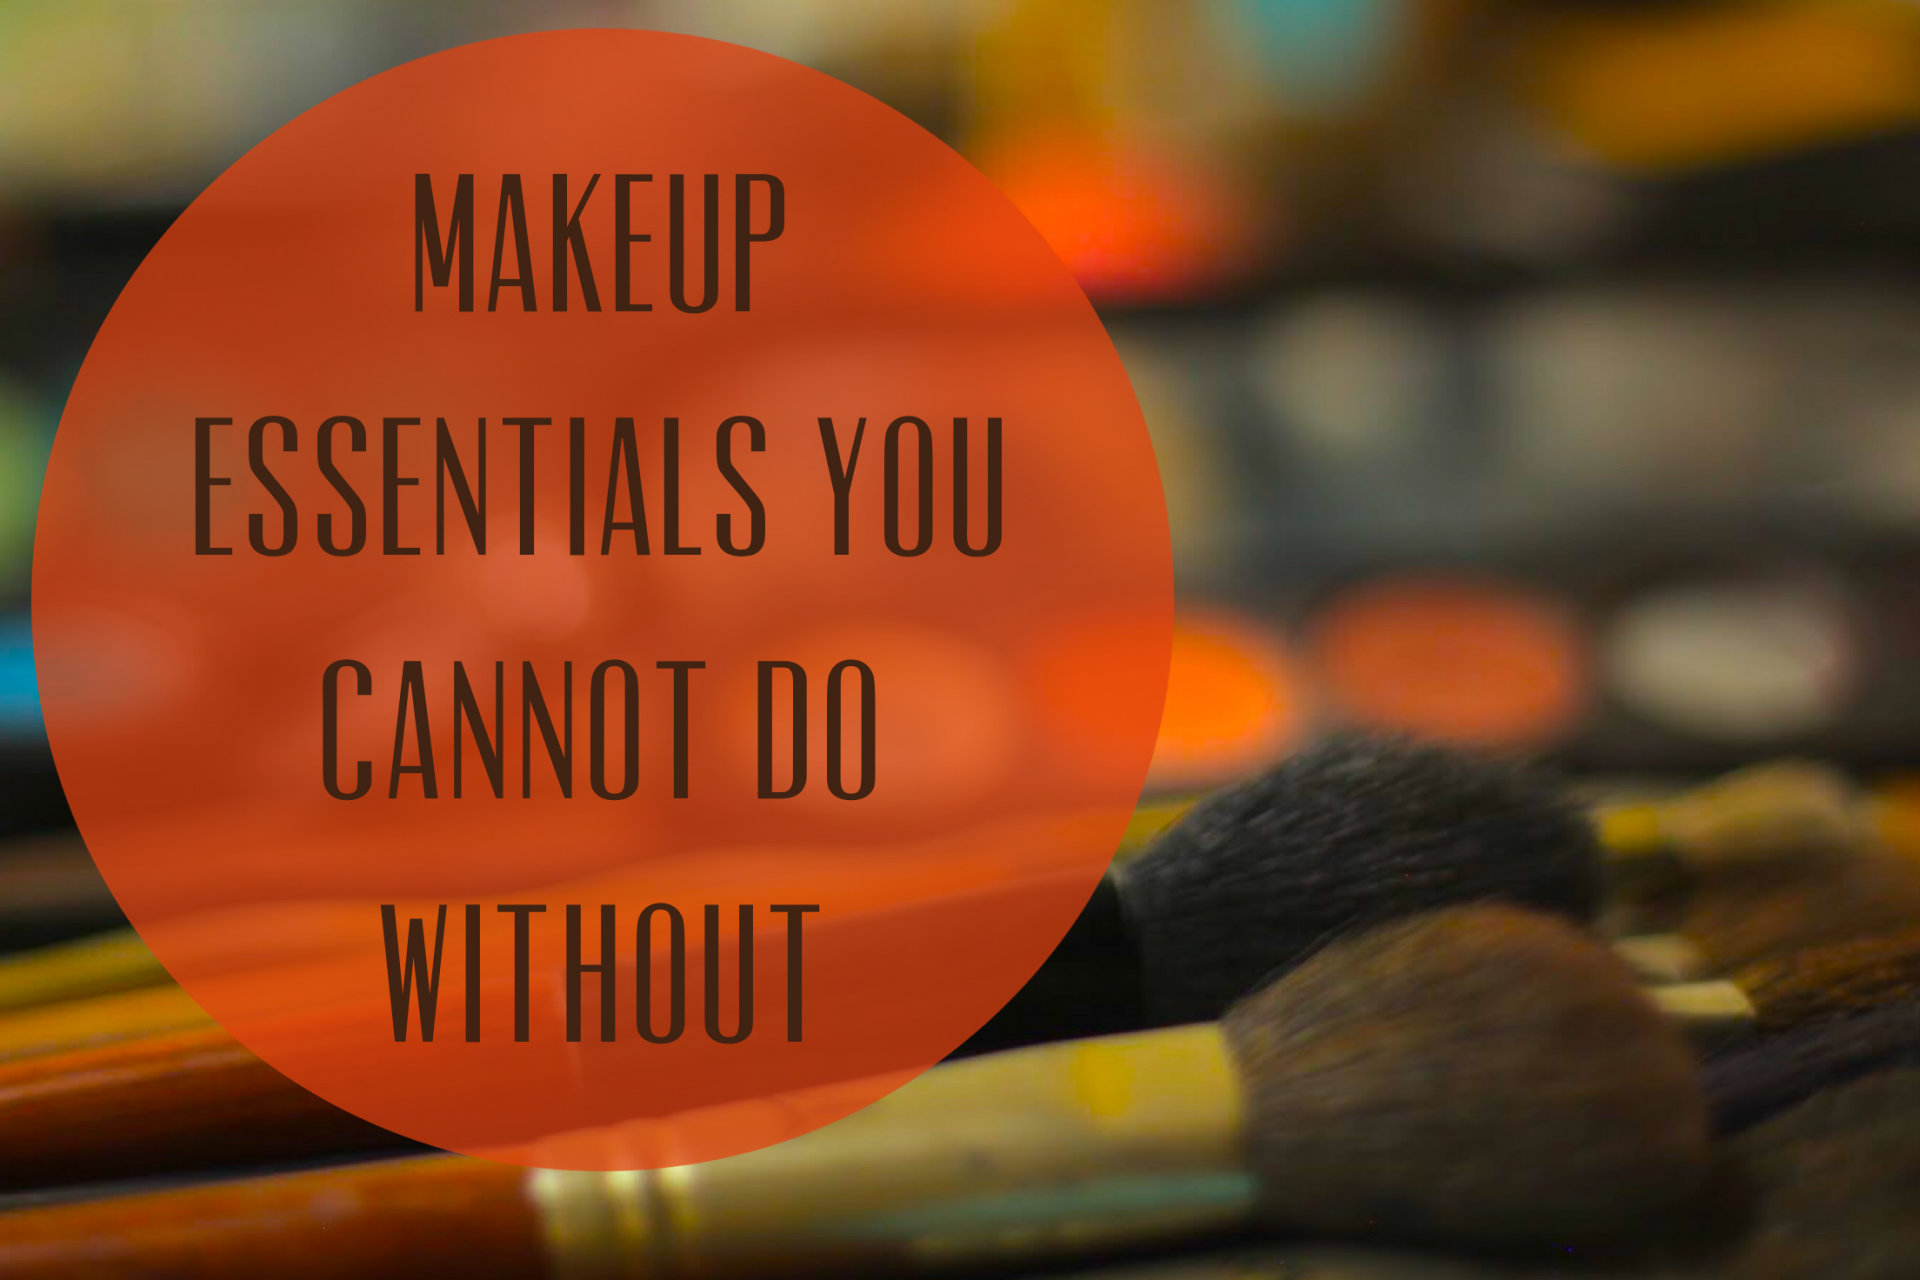 Essential Makeup Items you cannot do without